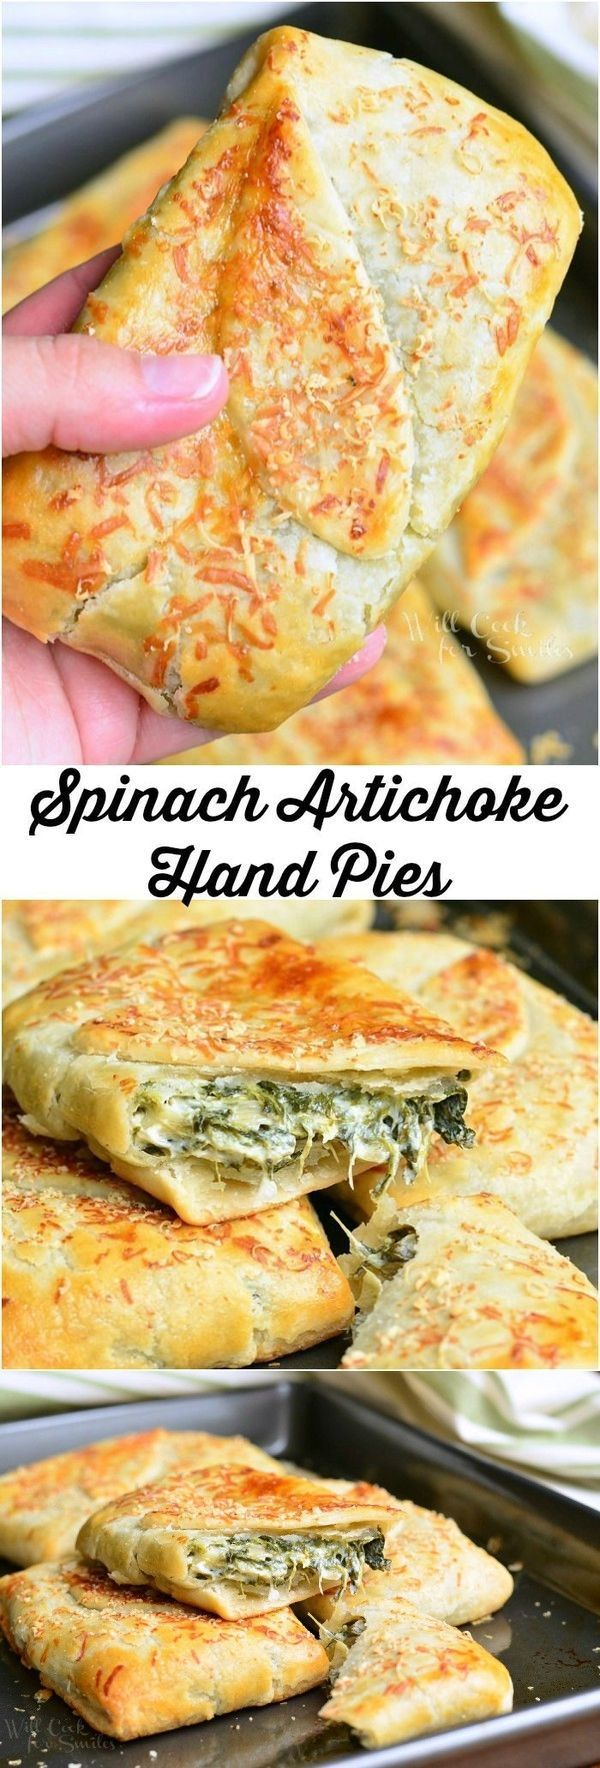 Spinach and Artichoke wraps